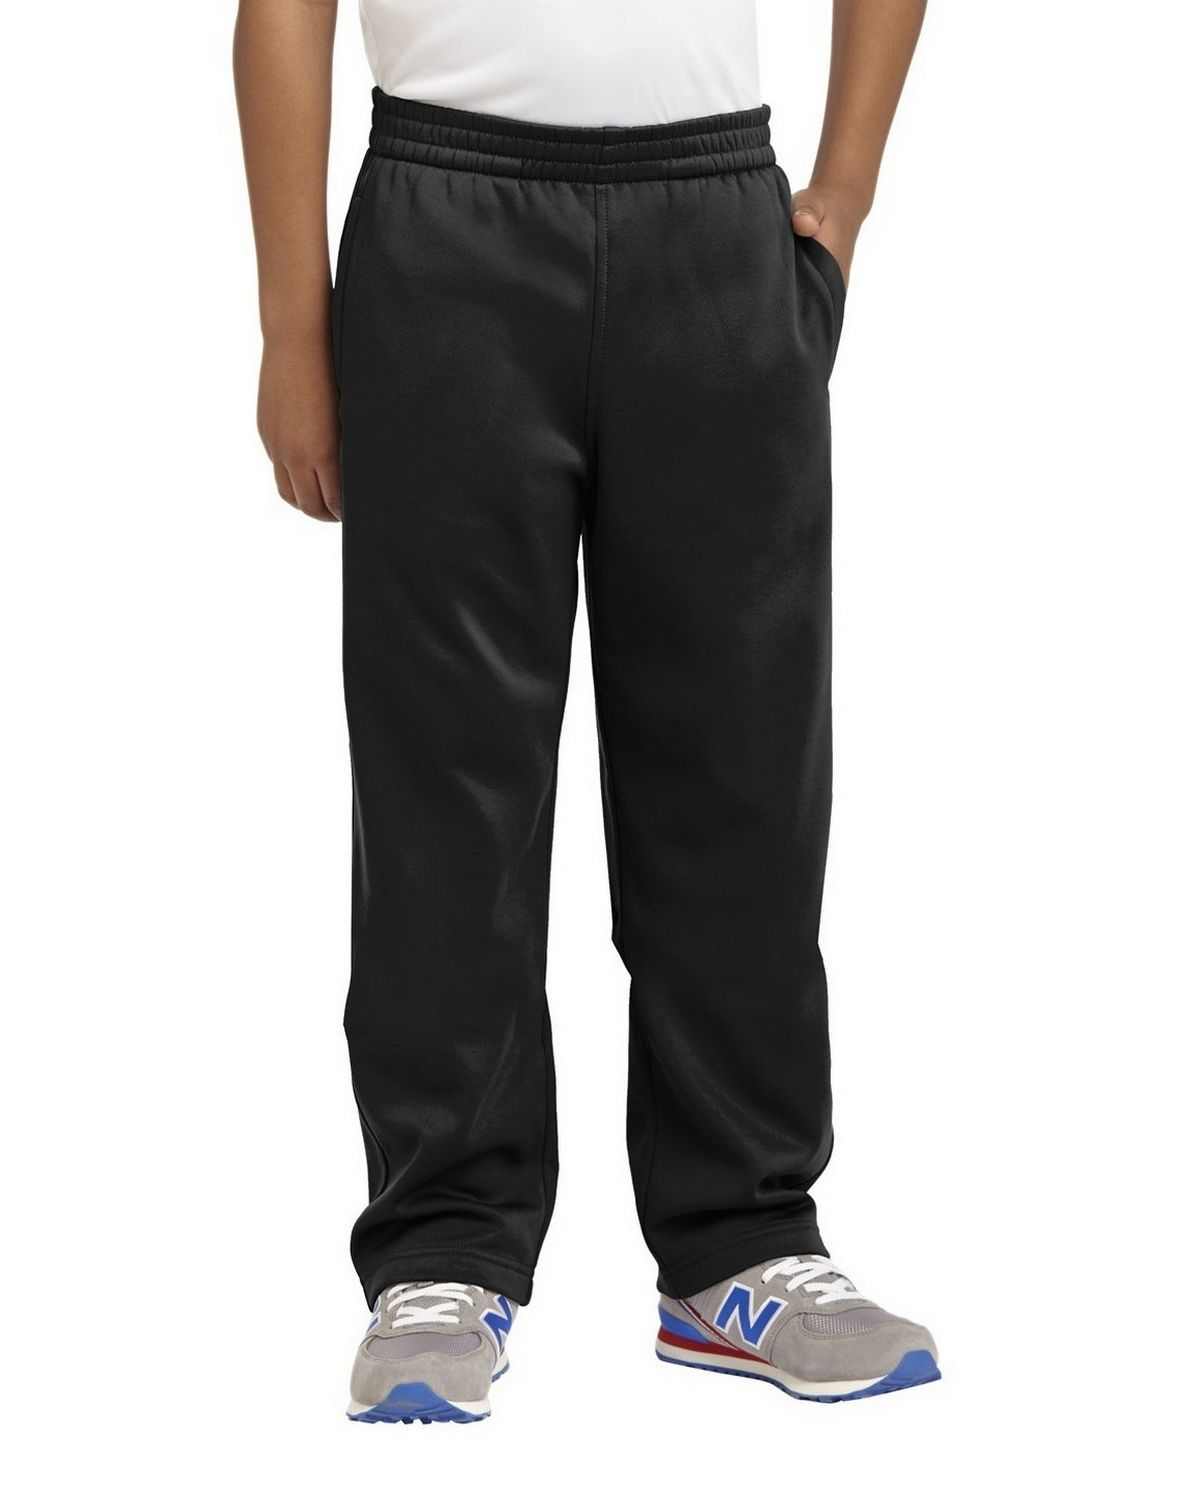 Sport-Tek YST237 Youth Sport-Wick Fleece Pant - Black - XS YST237